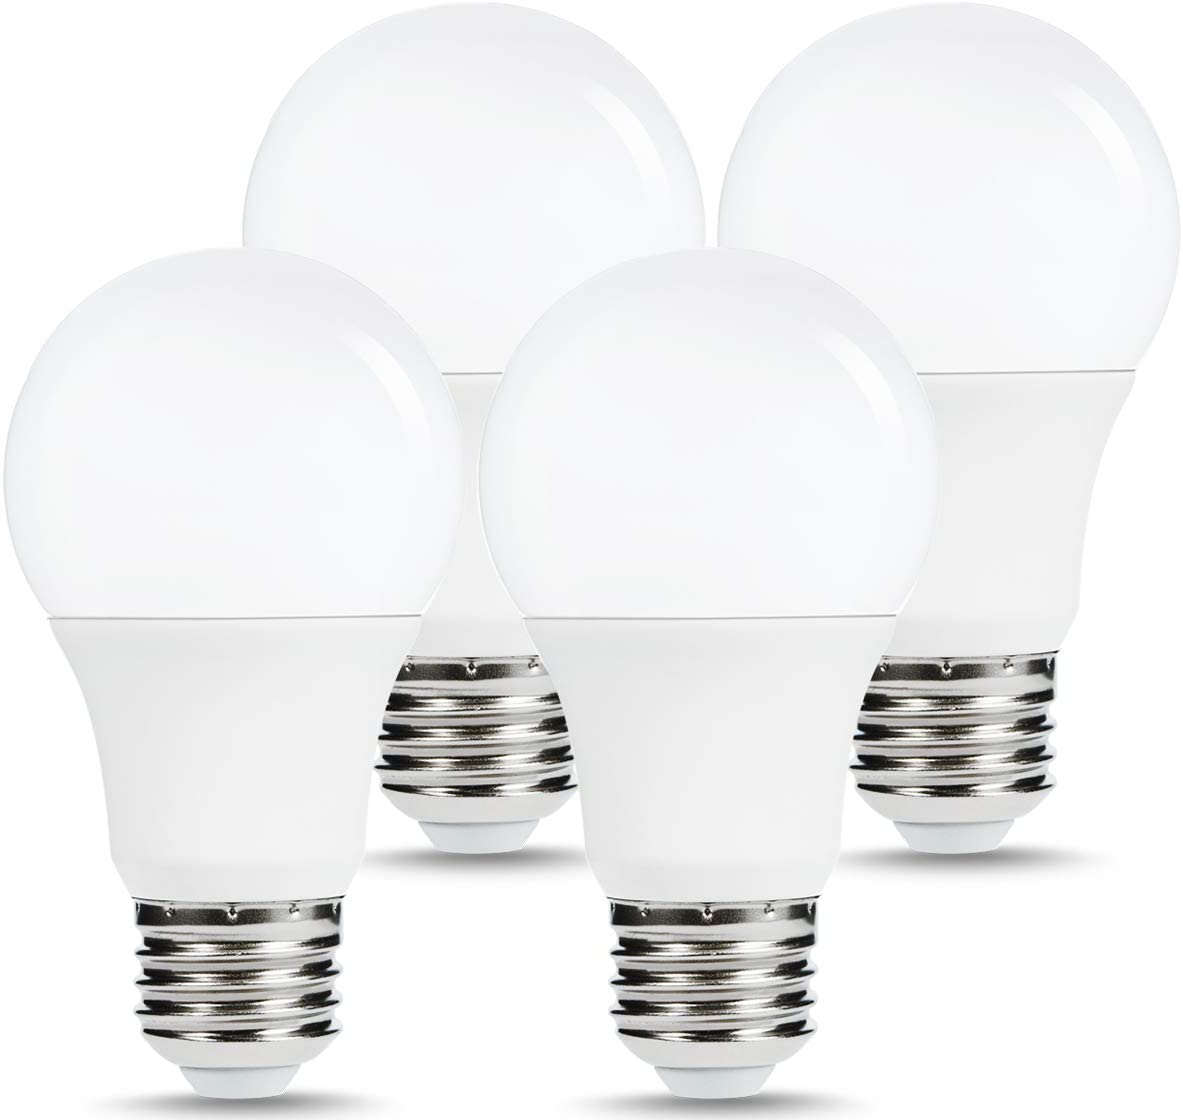 Homigo LED Light Bulbs 4-Pack, Non-Dimmable, 20W (150 Watt Equivalent), 2000LM, 5000K Daylight White, A19 LED Light Bulbs, Standard Replacement Bulbs with E26 Base